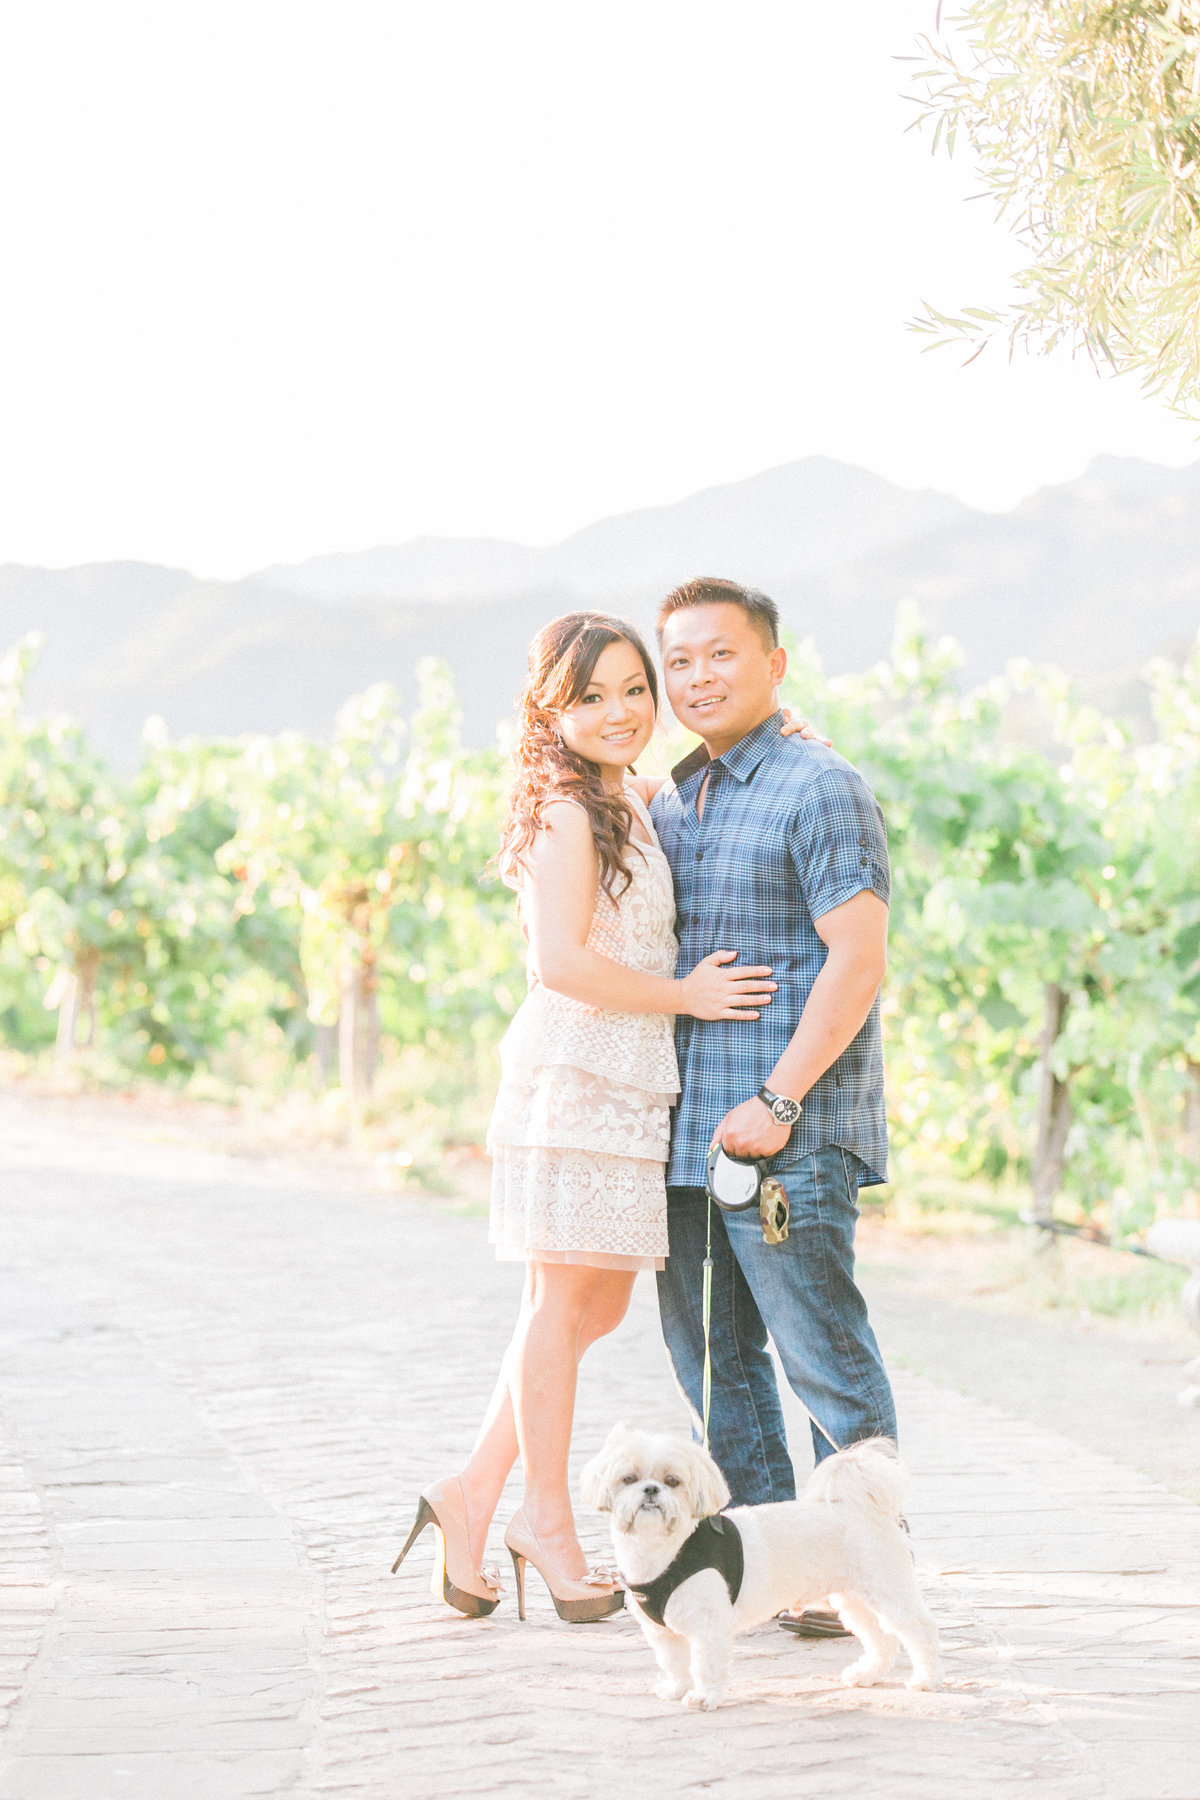 010_California-winecountry-engagement-photos-with-dog